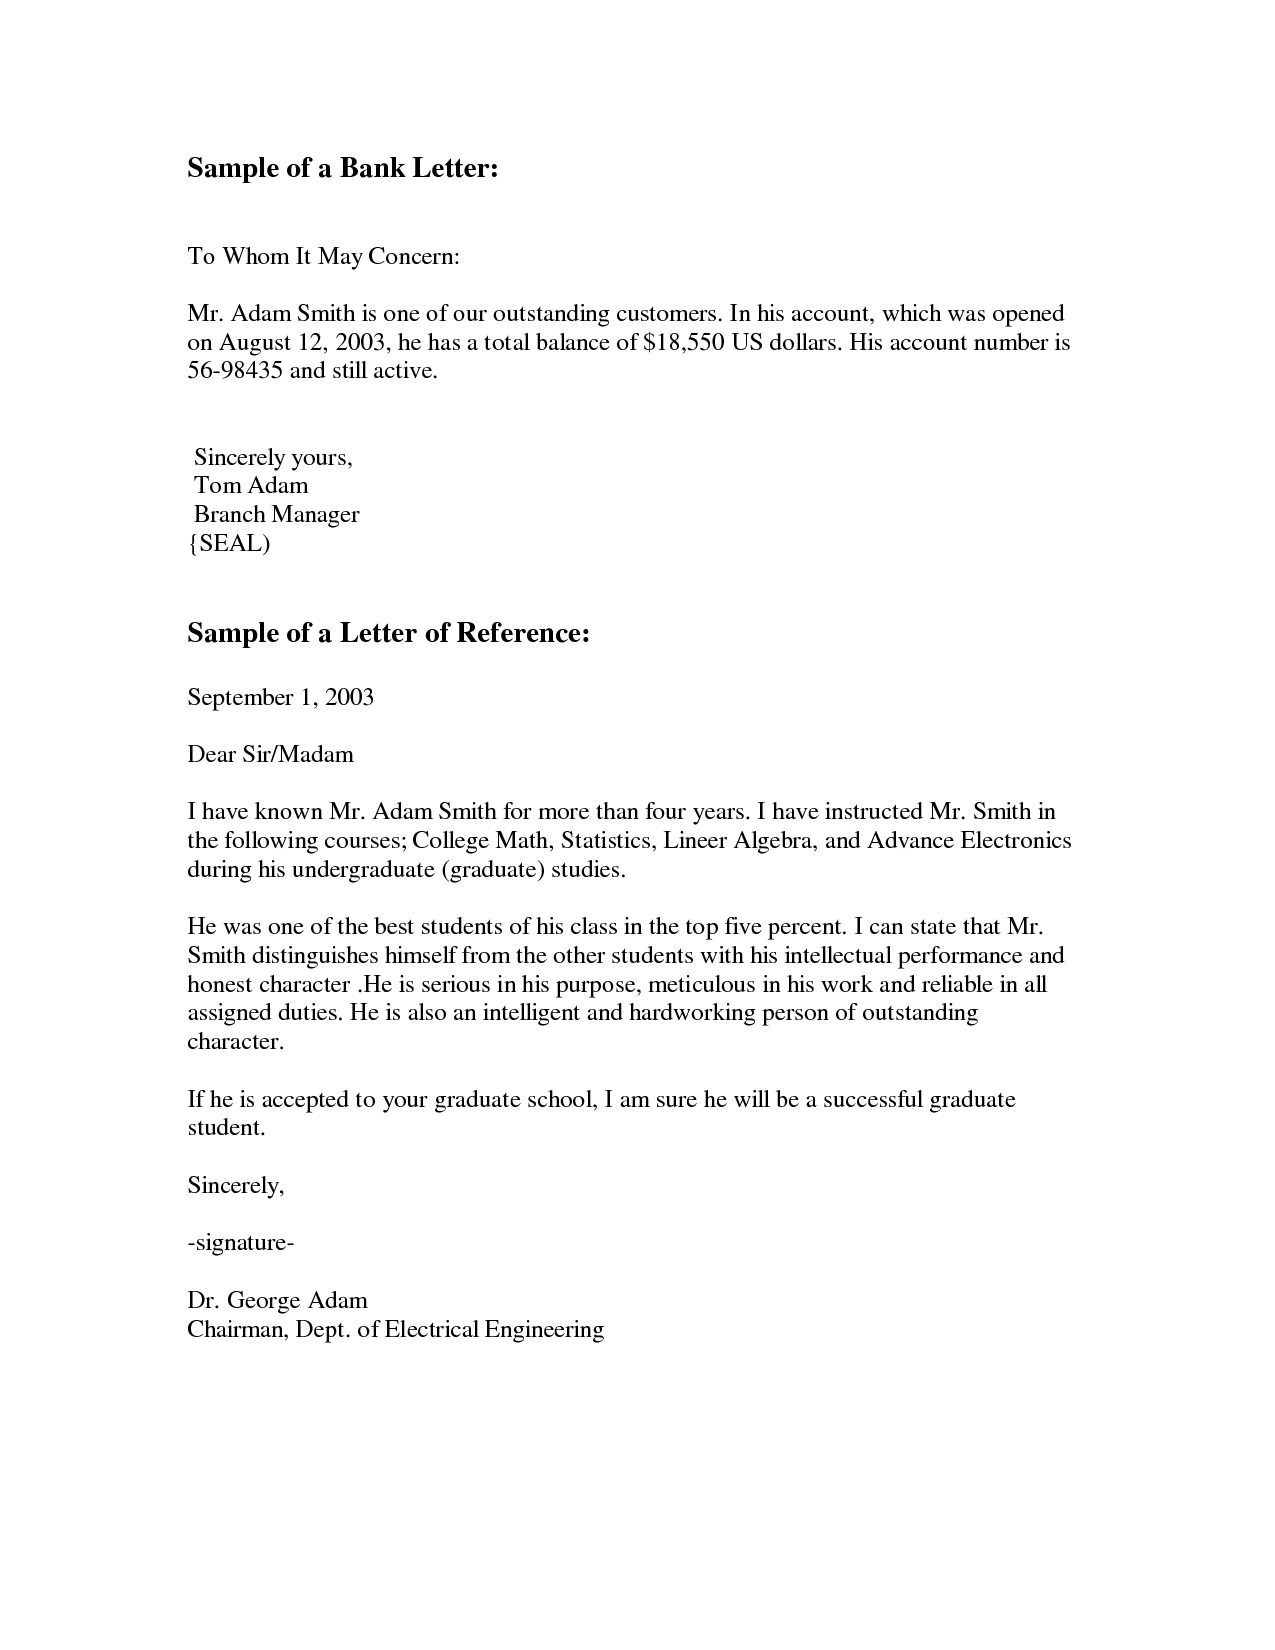 Business Letter Template - Business bylaws Template Best formal Letter Template Unique bylaws